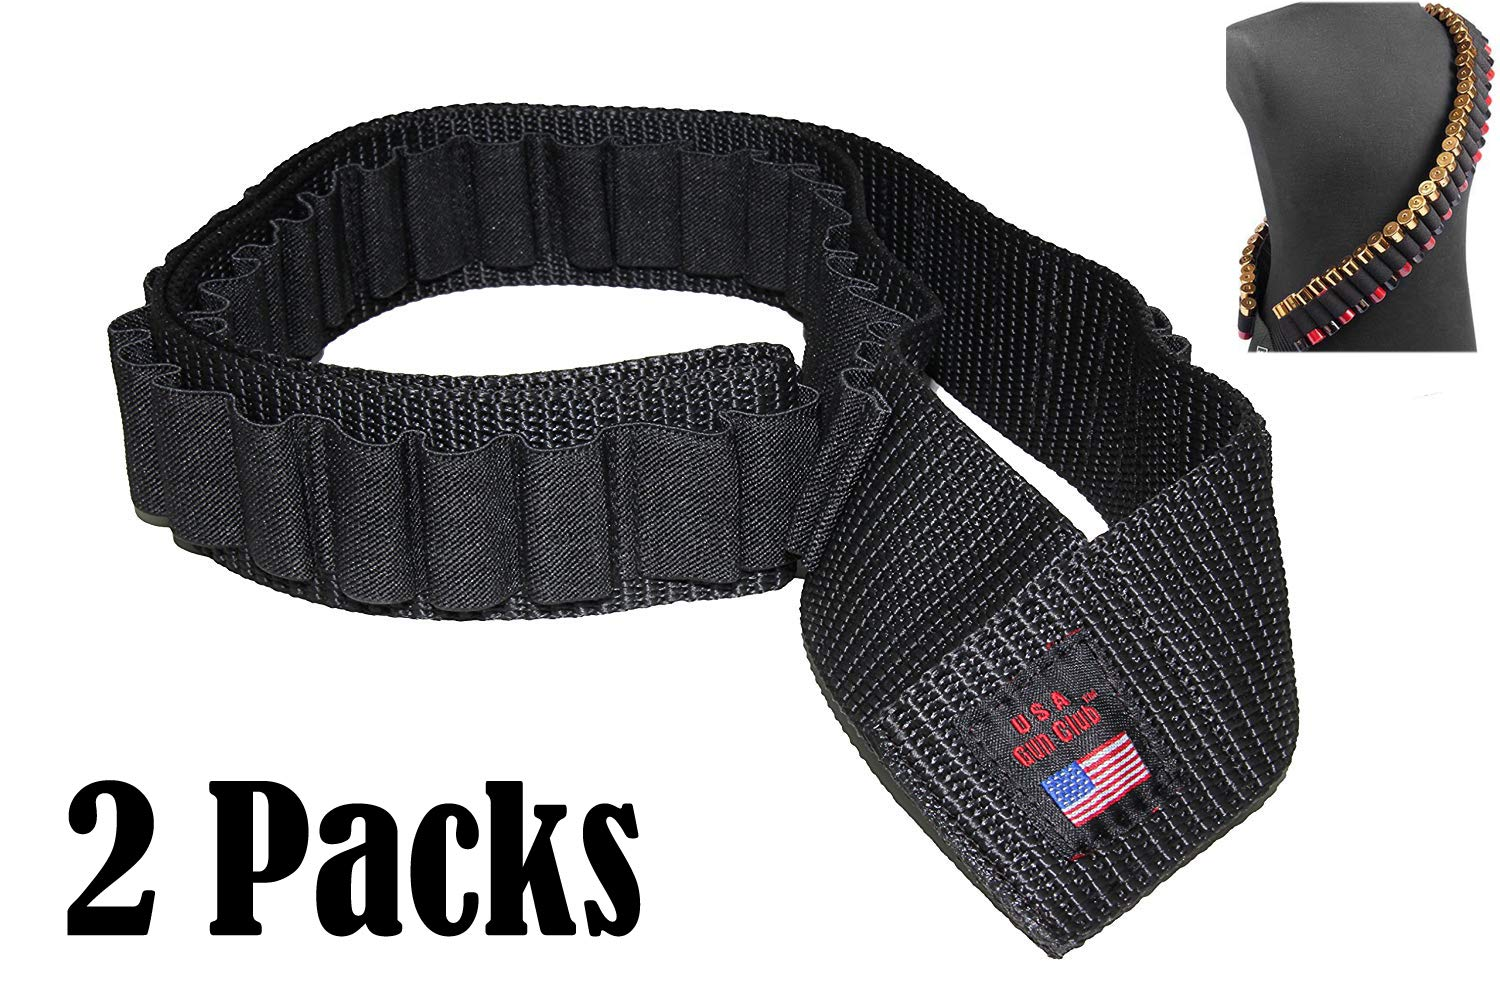 Pack of 2 USA GunClub Shotgun Rifle Sling 56 Shell Bandolier /56 Rounds (2 Packs)